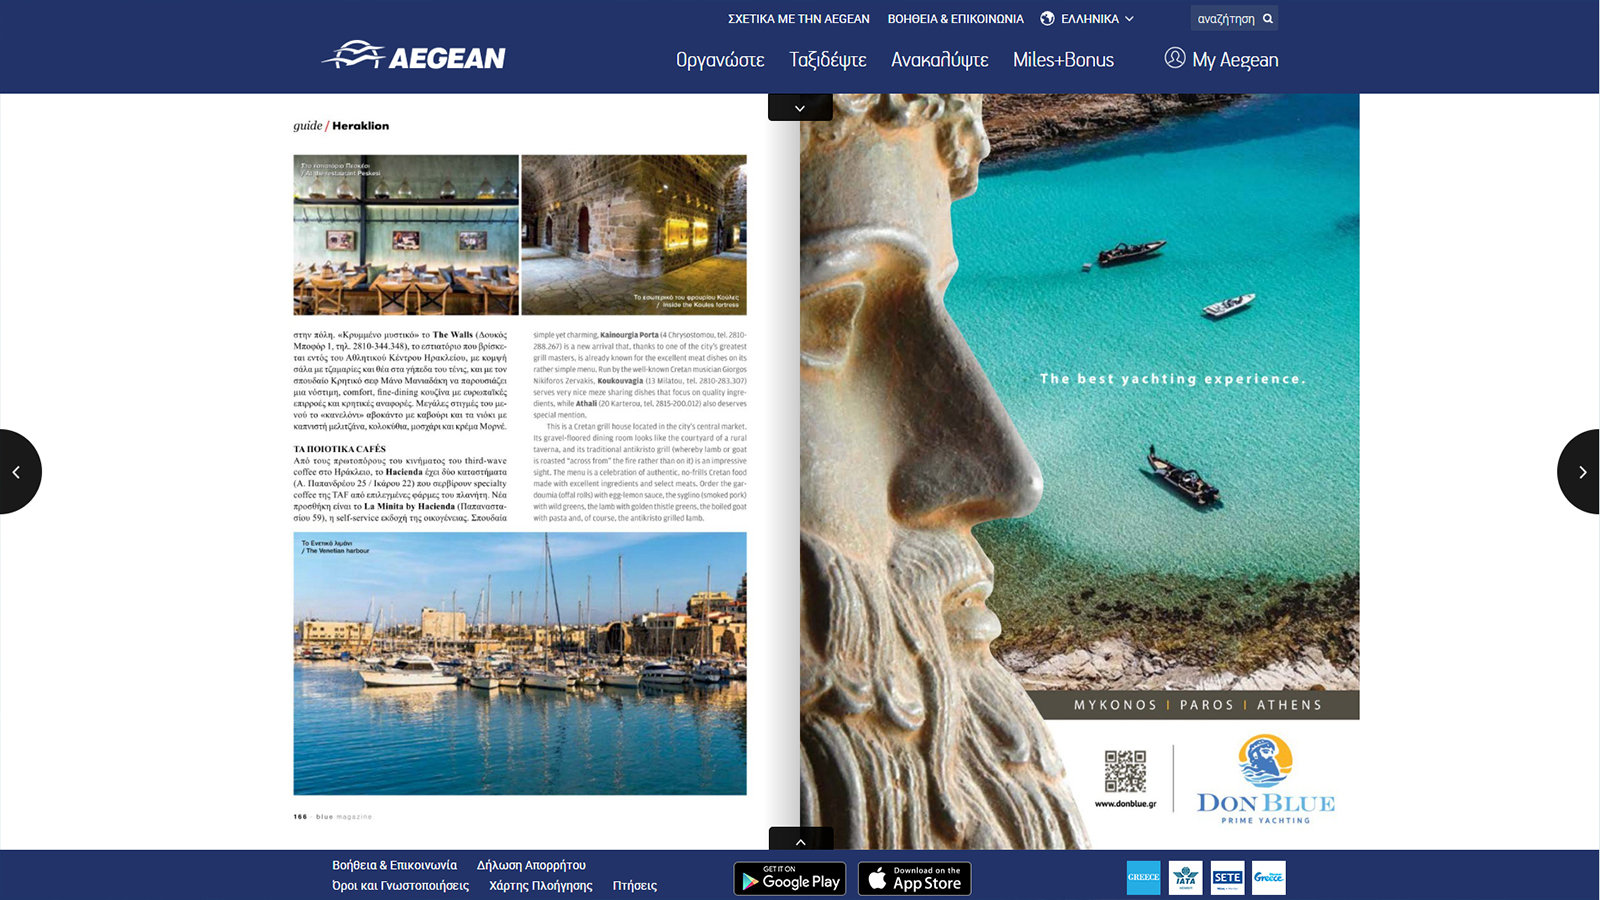 Aegean Blue Magazine Don Blue Yachting